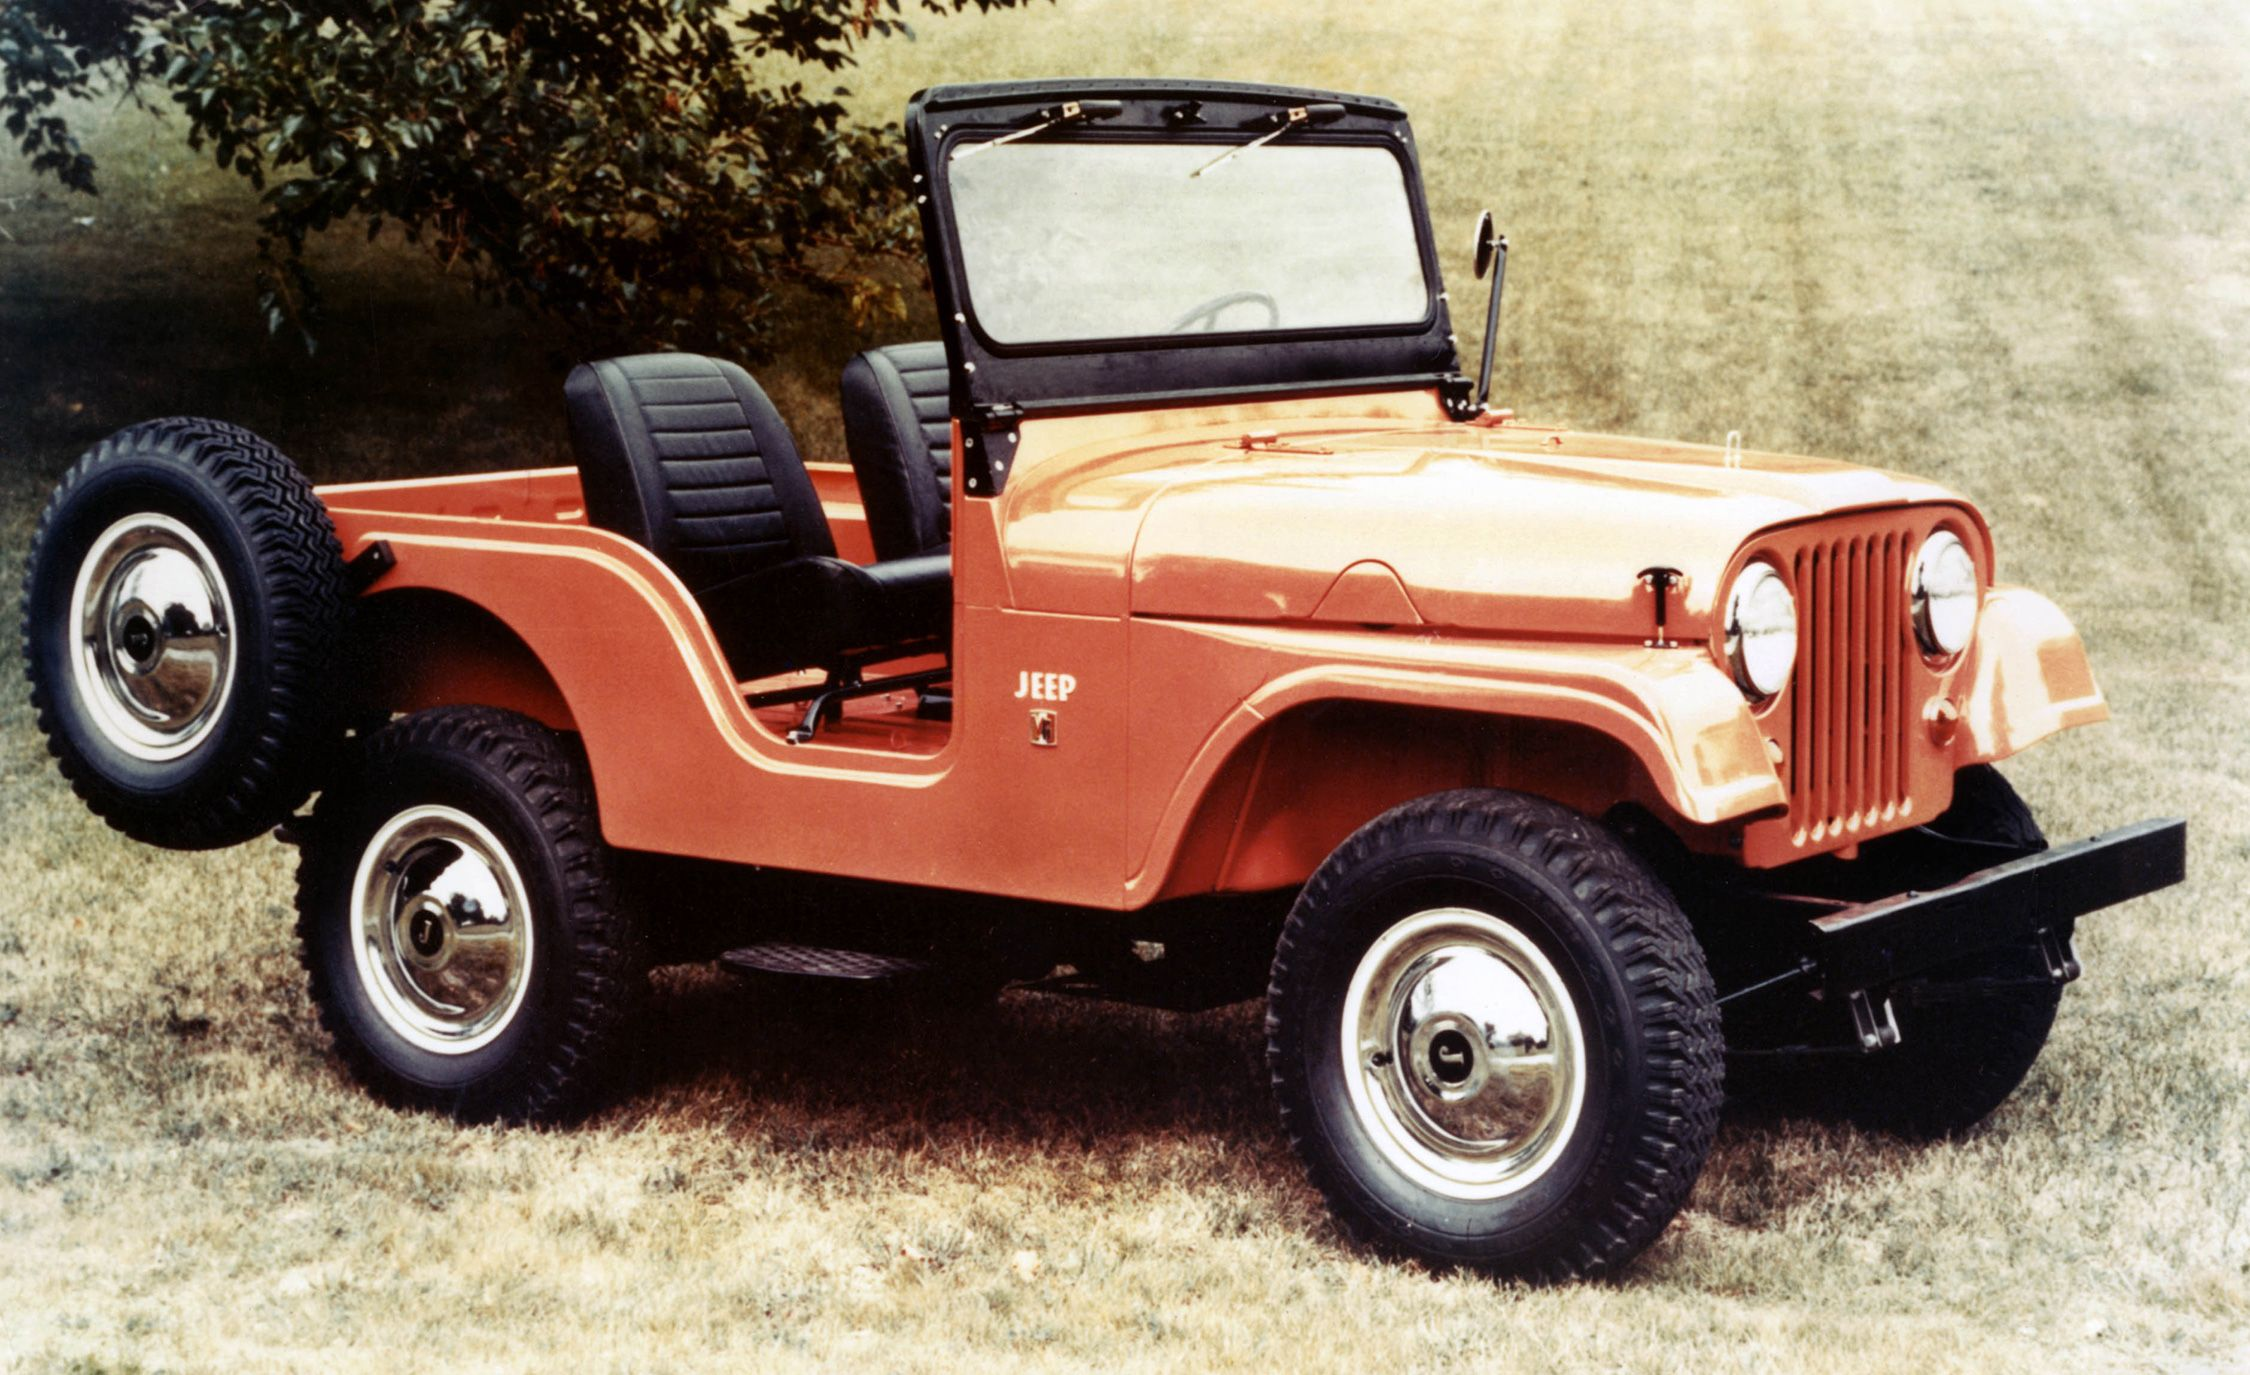 The Complete Visual History Of Jeep Wrangler From 1986 To Present 2002 Fuel Injector Wiring Diagram